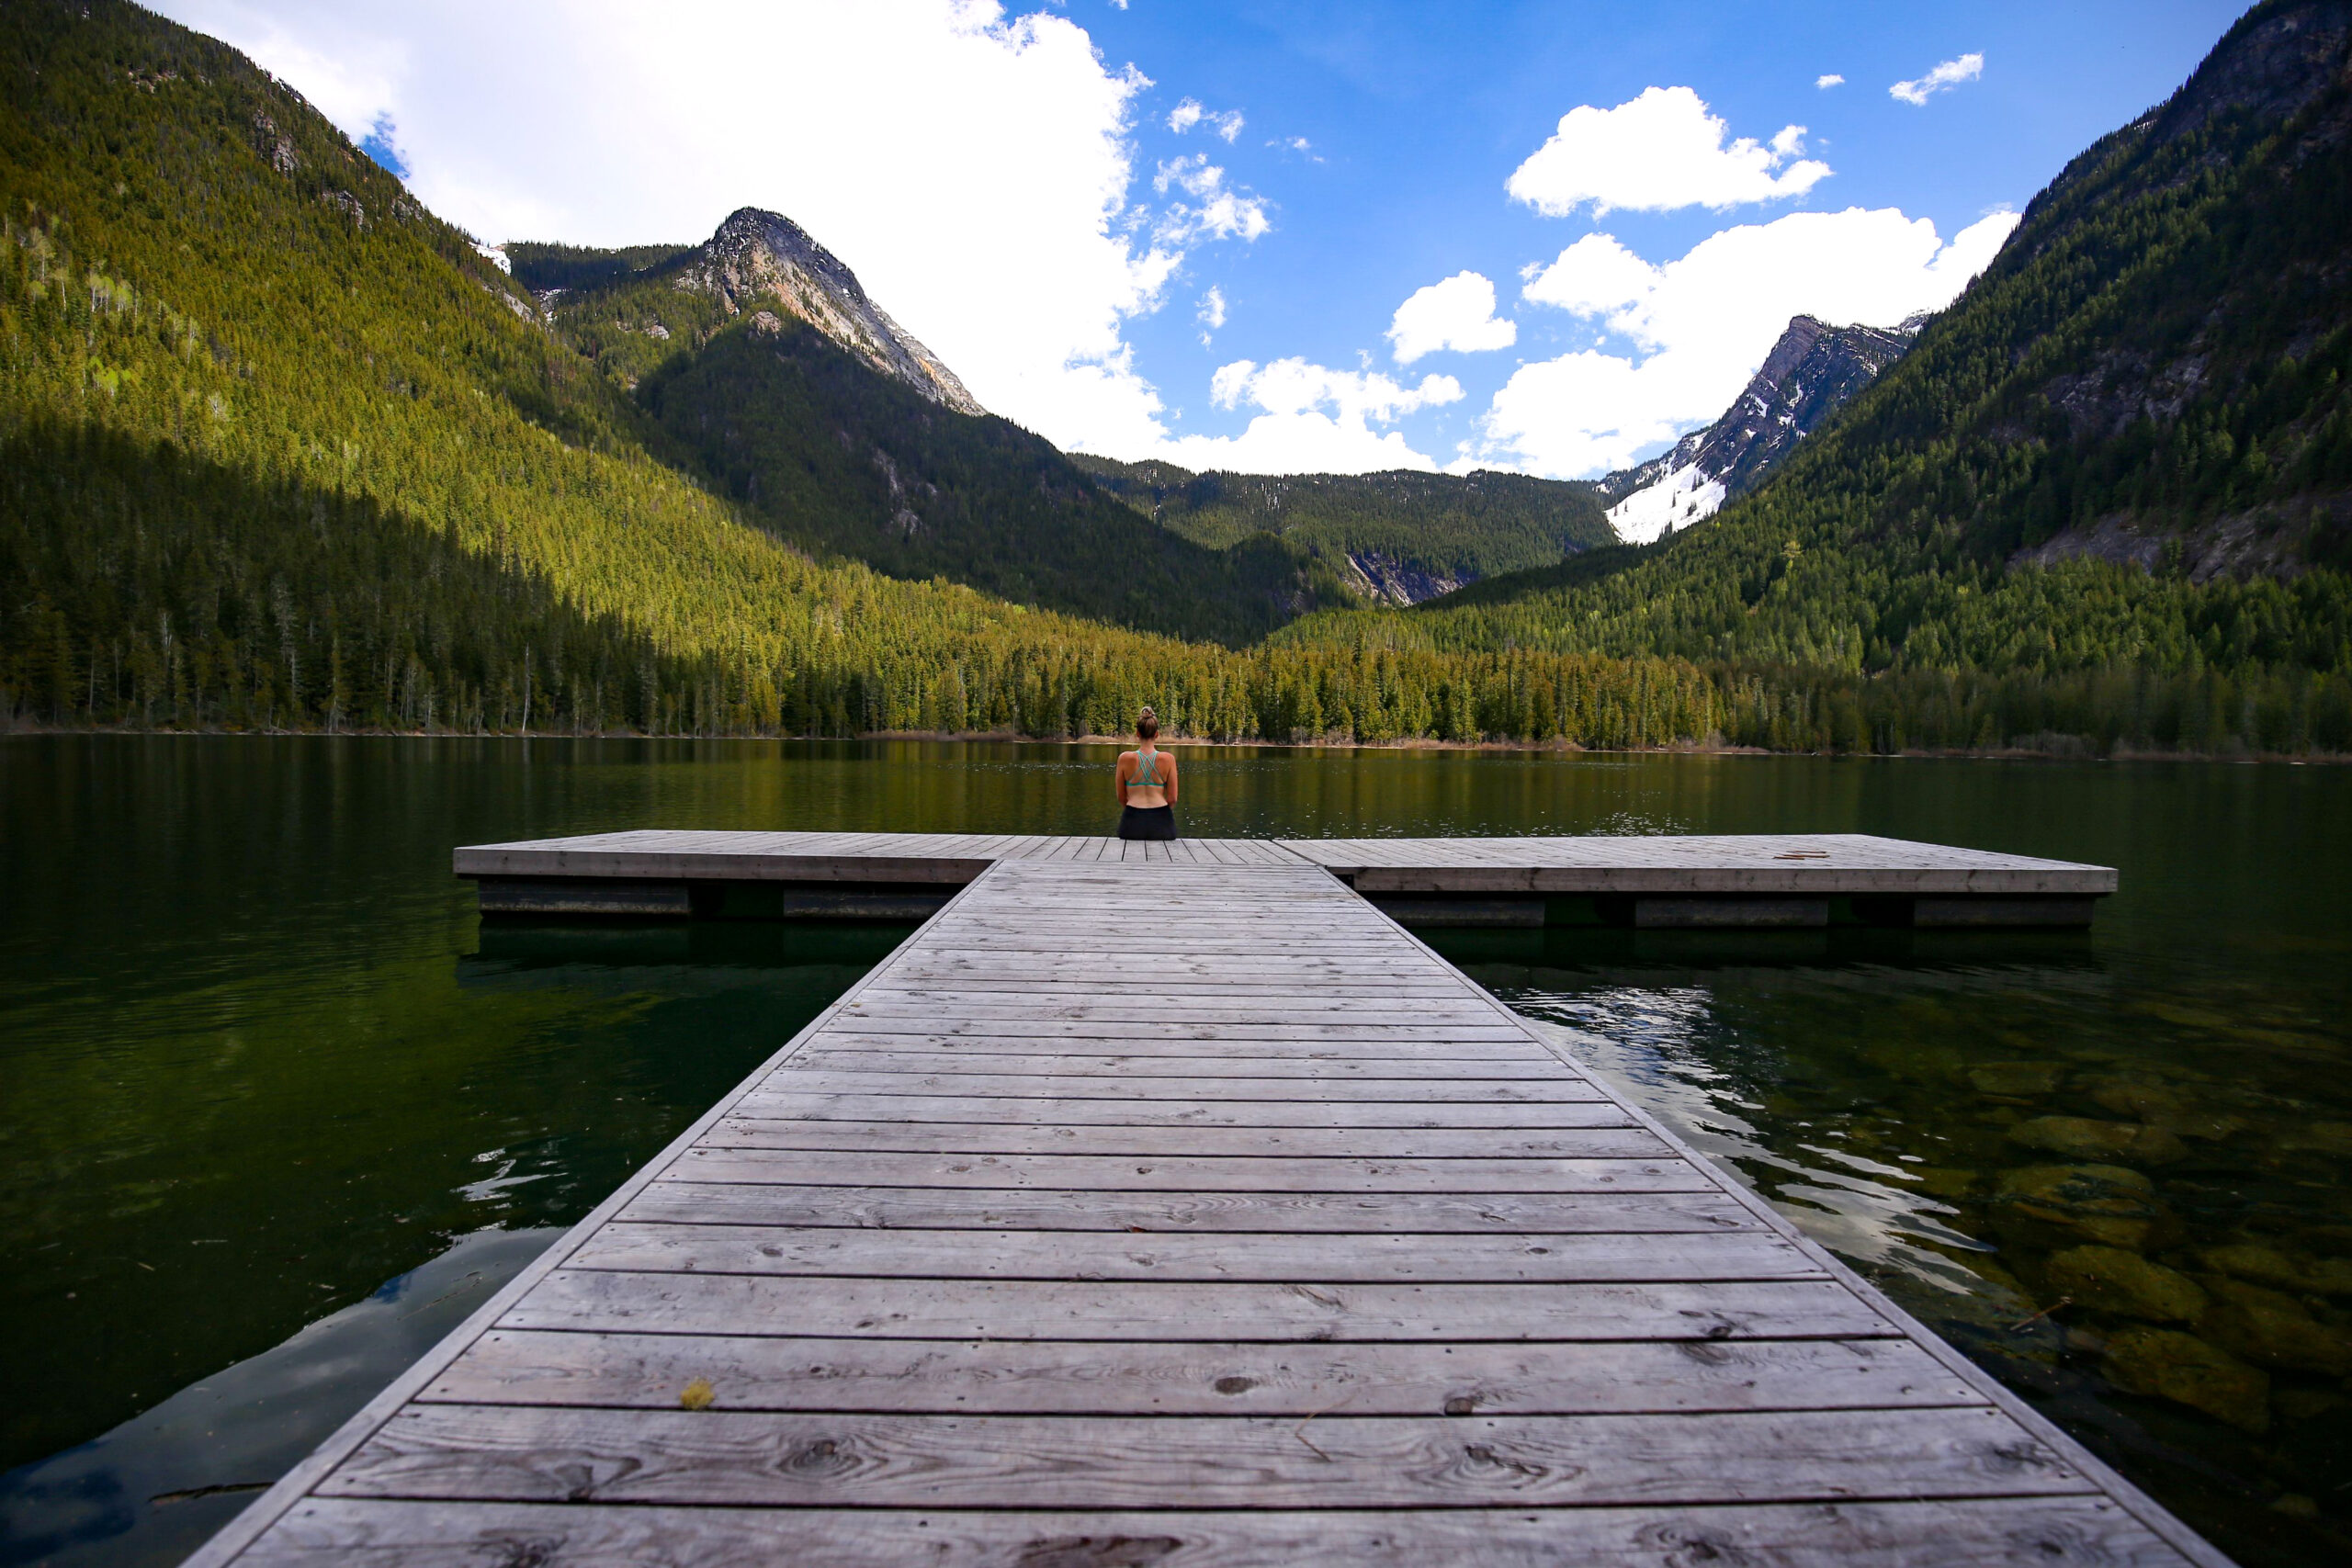 Dock in the mountains